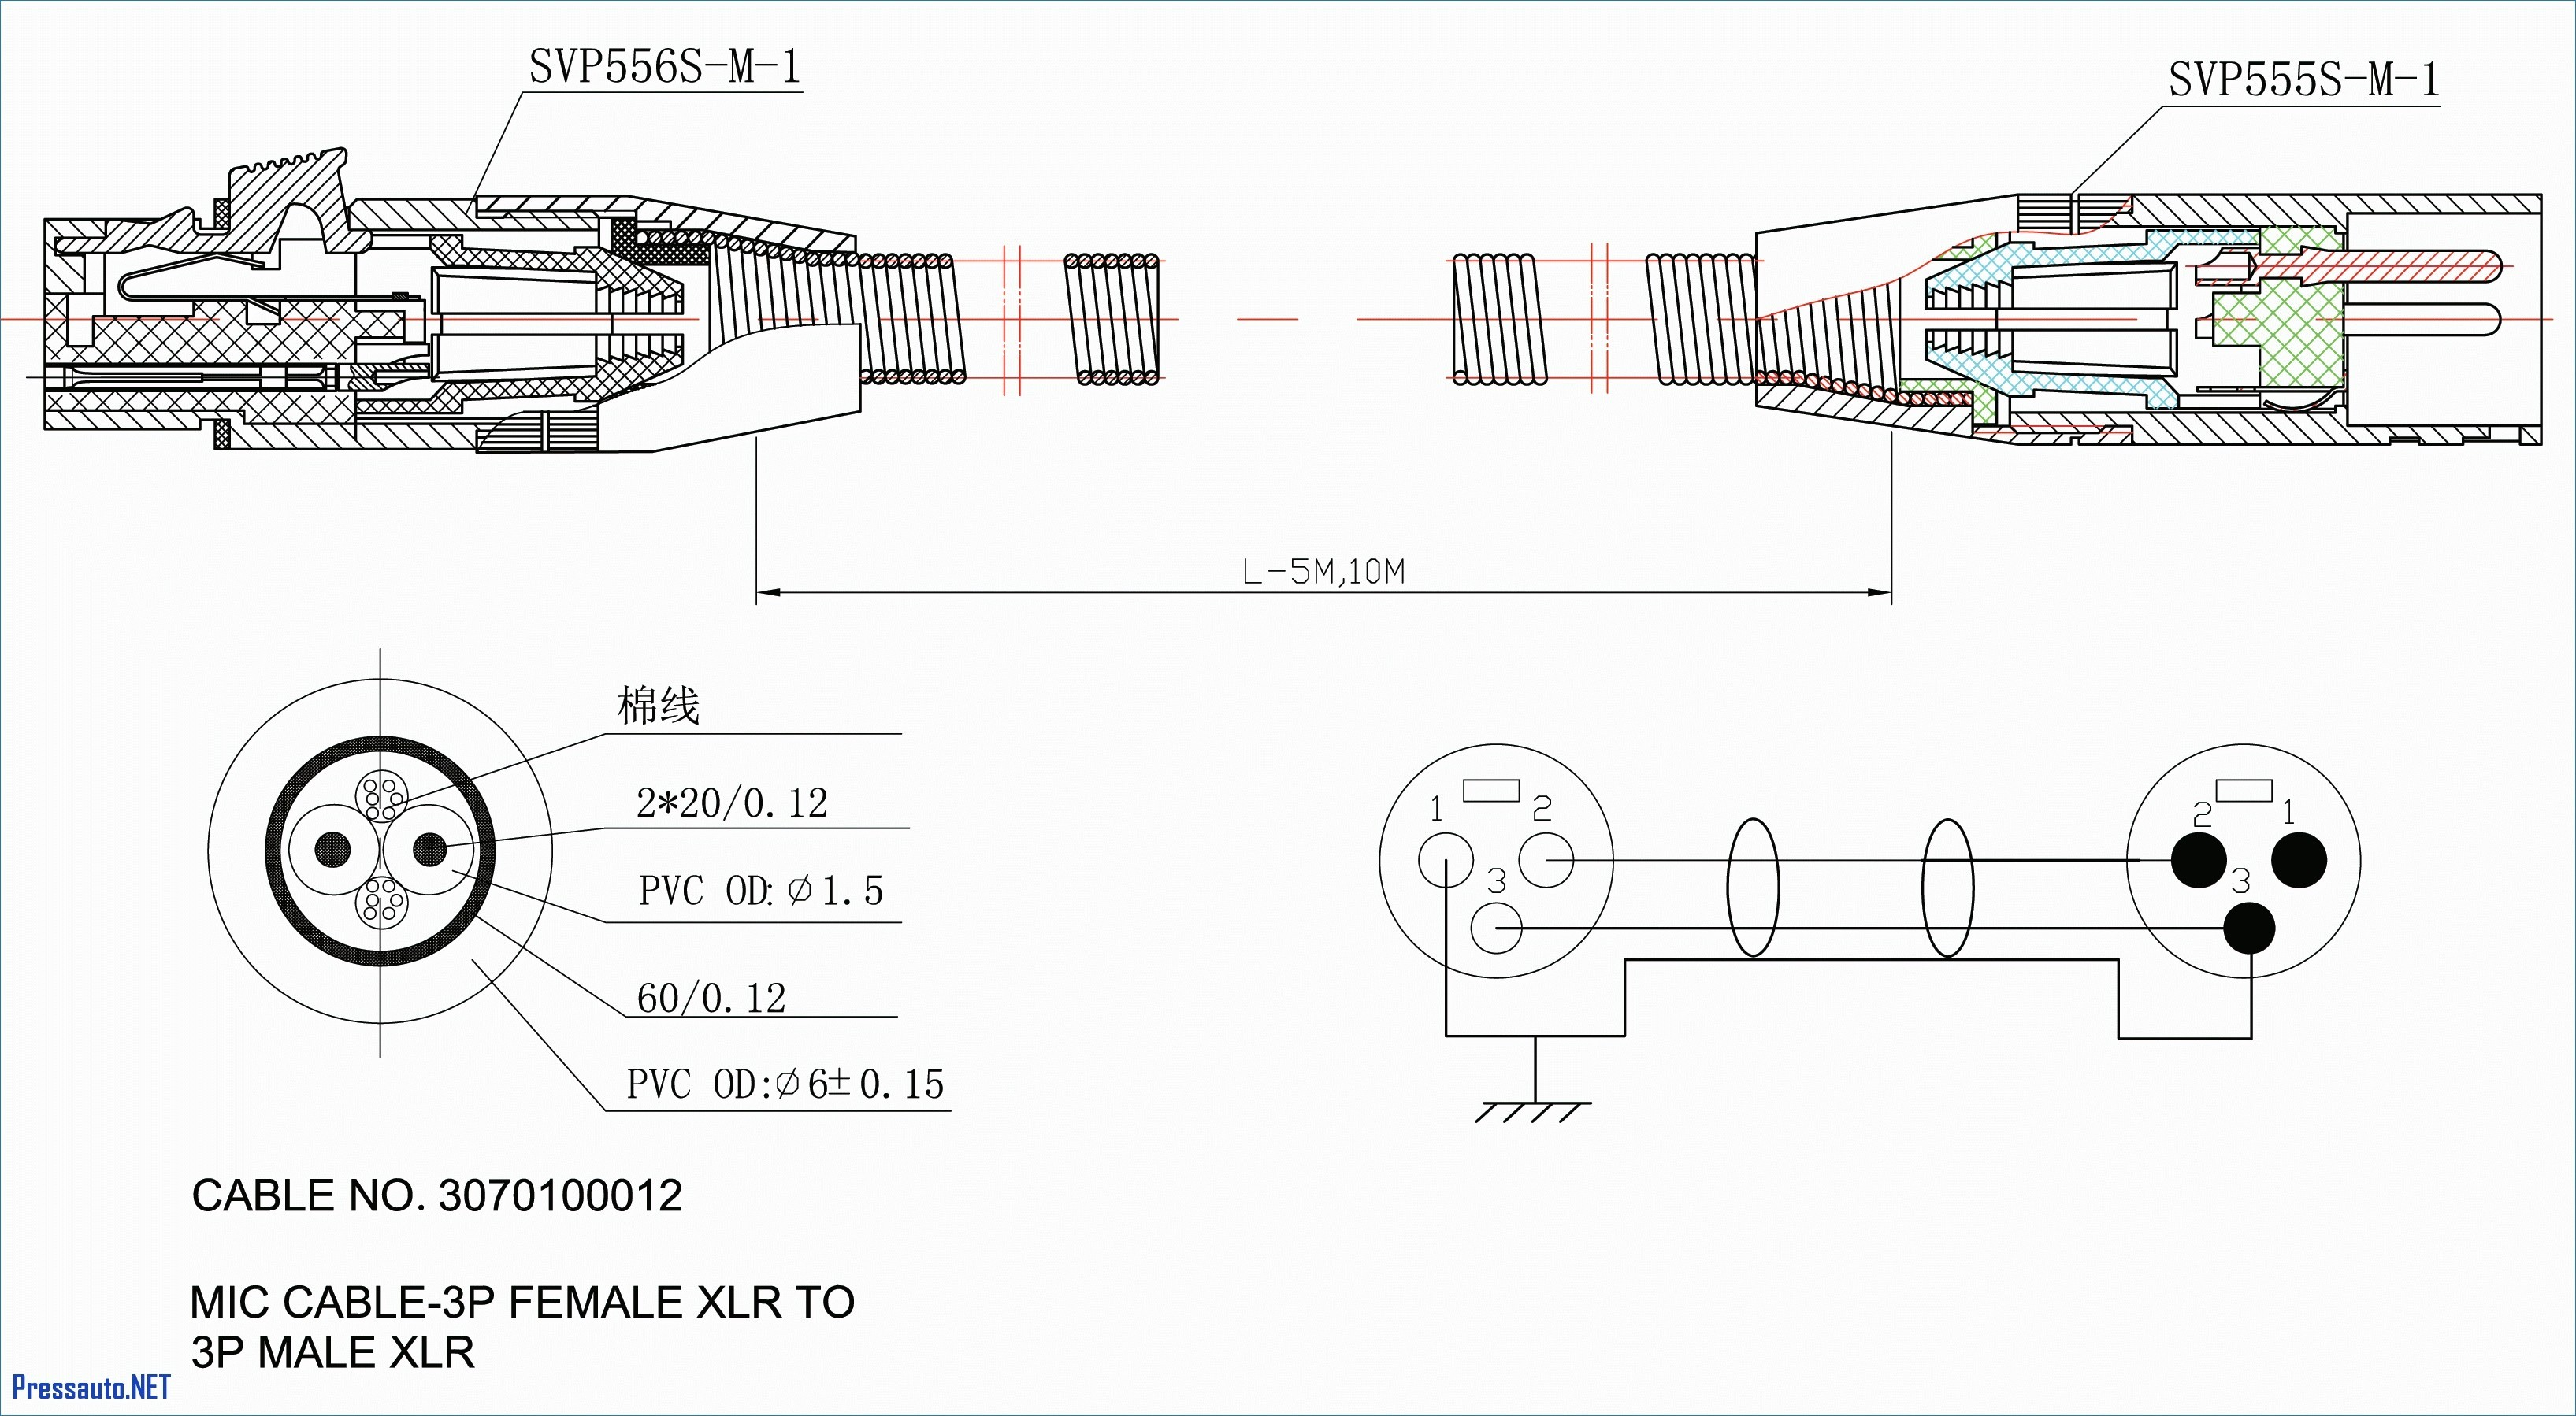 Car Engine Layout Diagram Vw Tdi Engine Diagram Another Blog About Wiring Diagram • Of Car Engine Layout Diagram